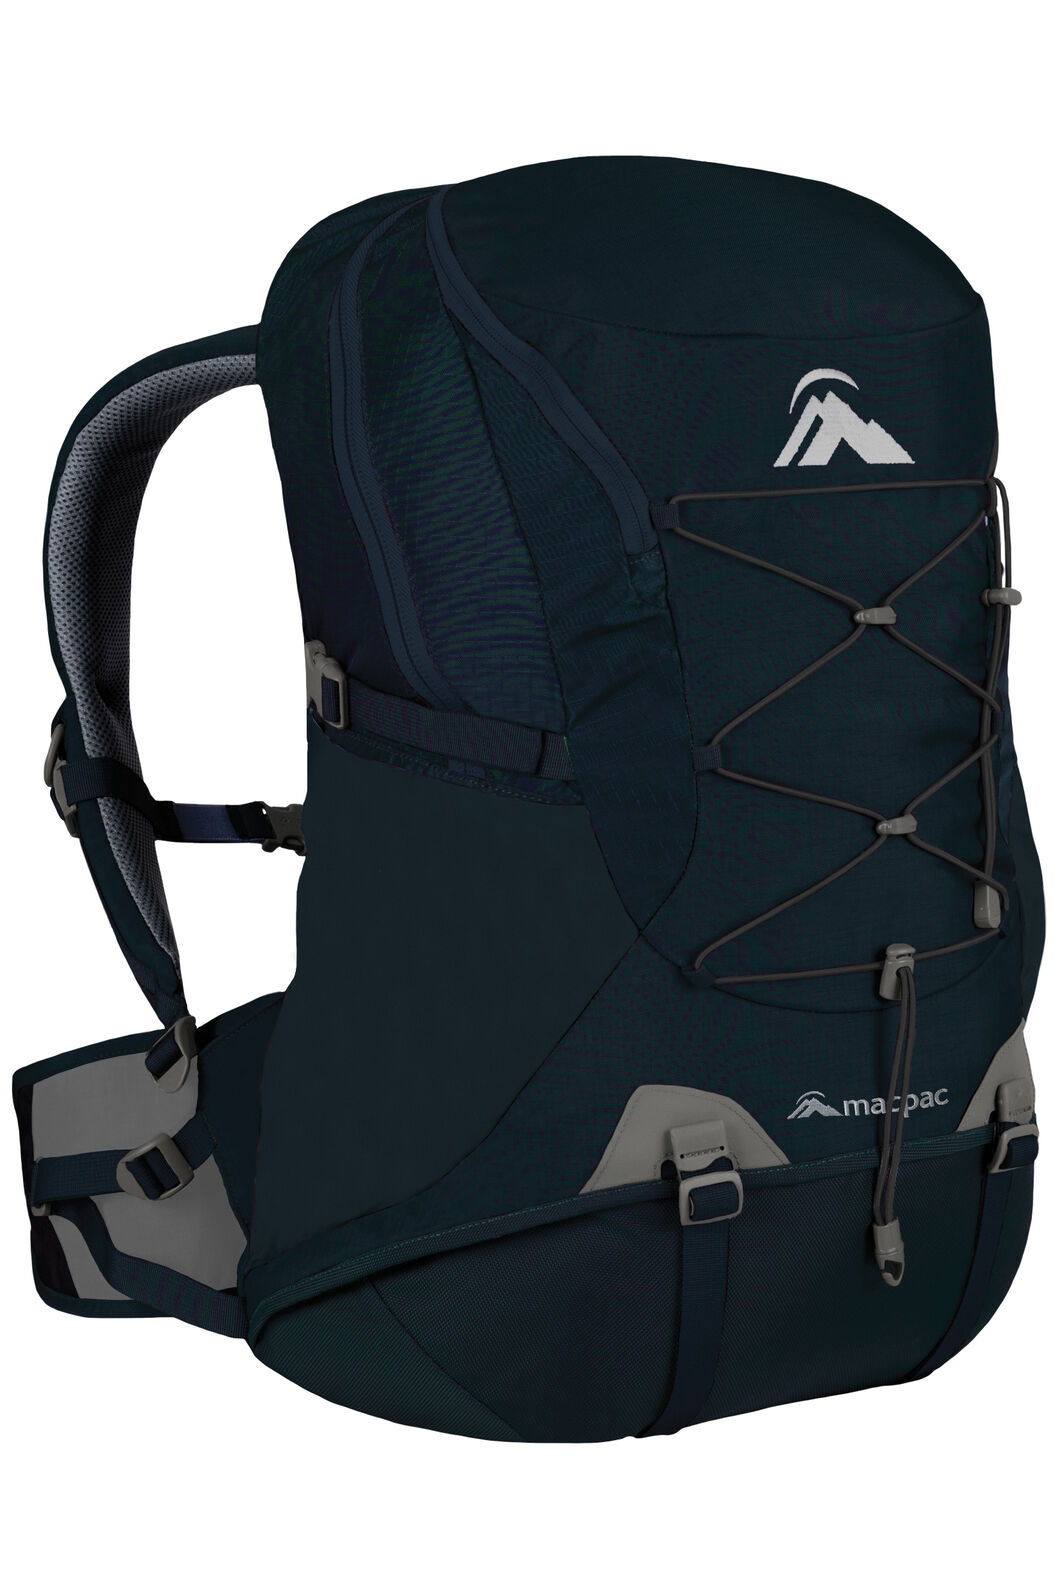 Voyager 35L Backpack, Carbon, hi-res